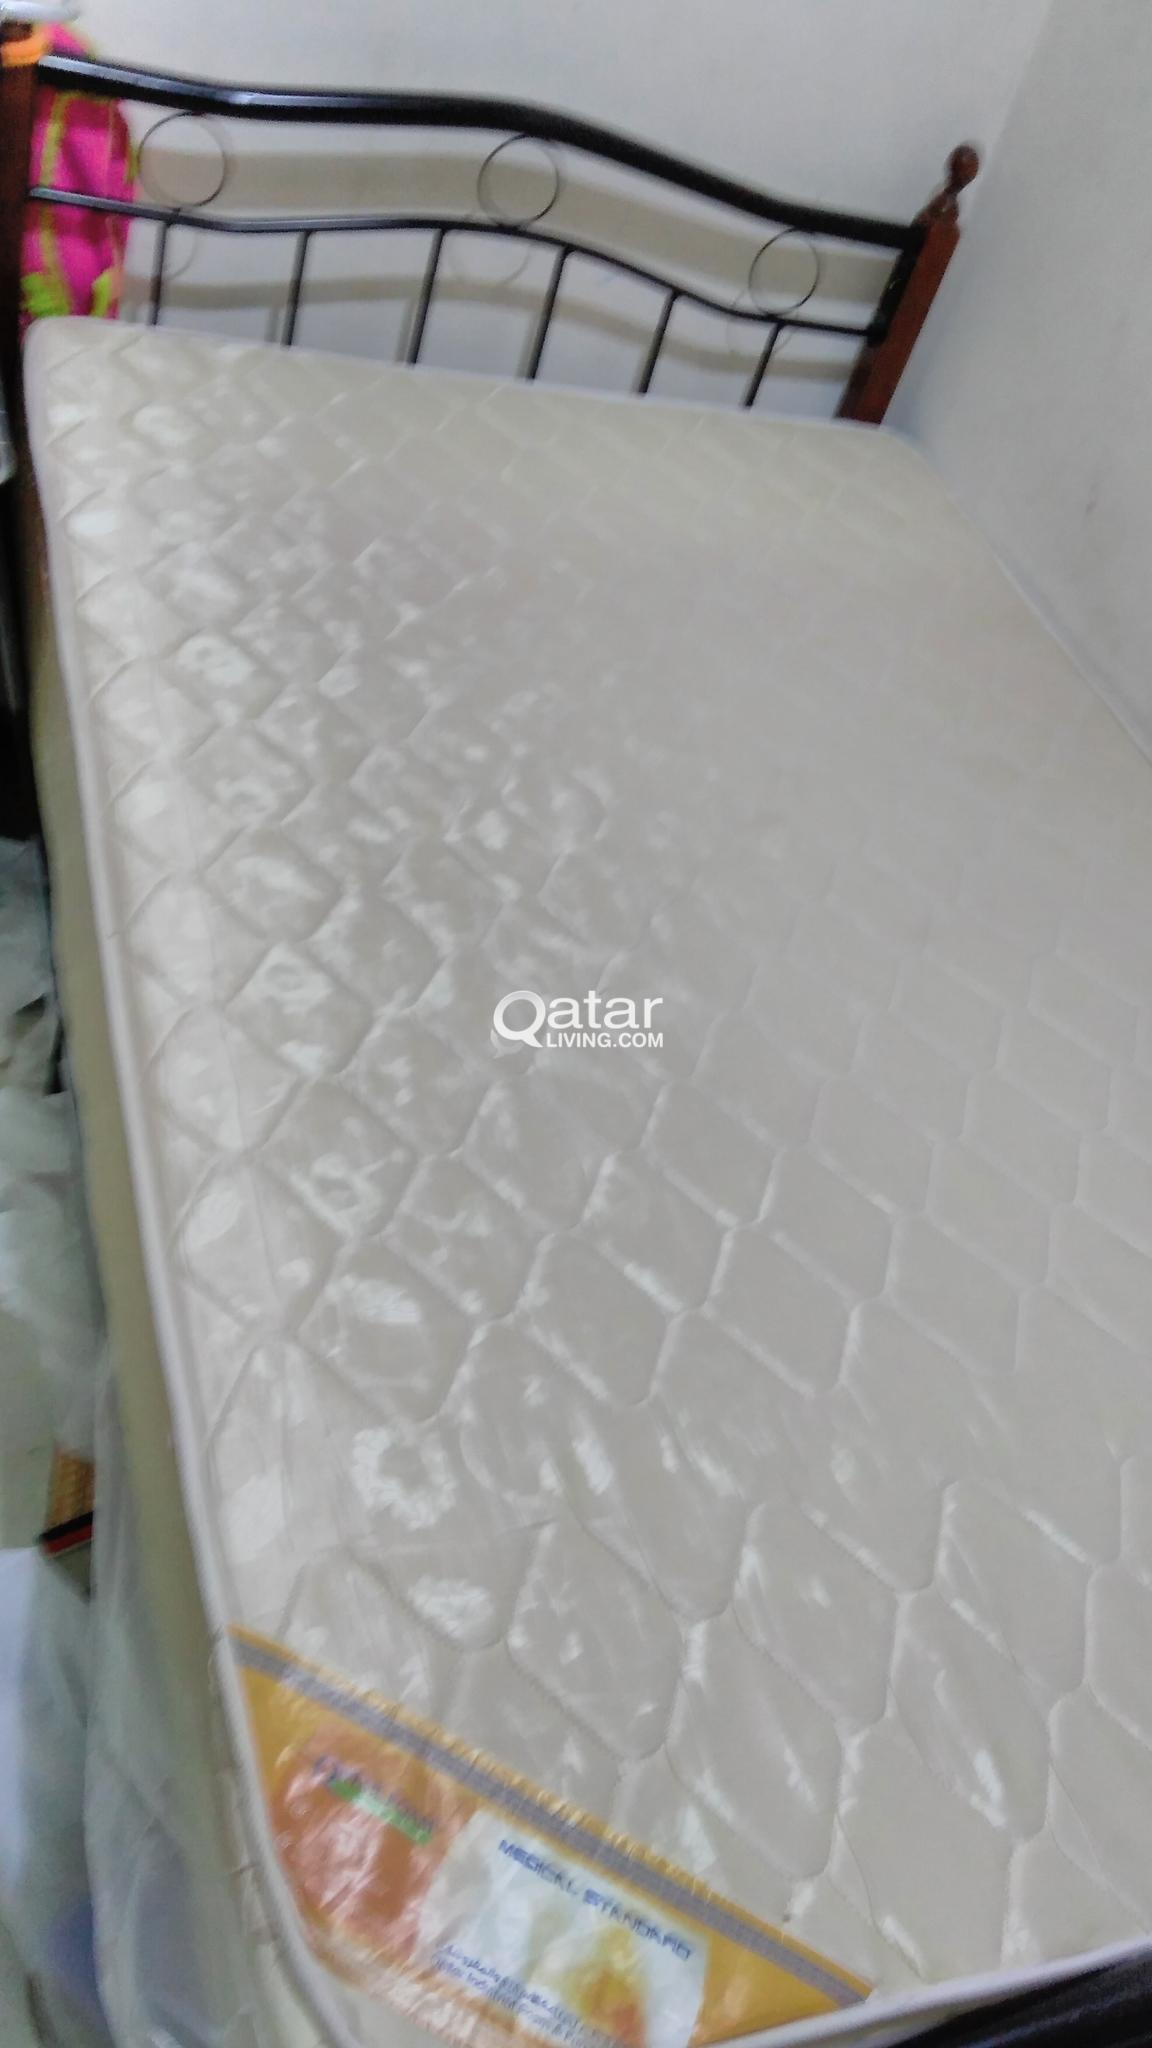 Bed 120 X 190 Bed And Coat Queen Size 120 X 190 Qatar Living